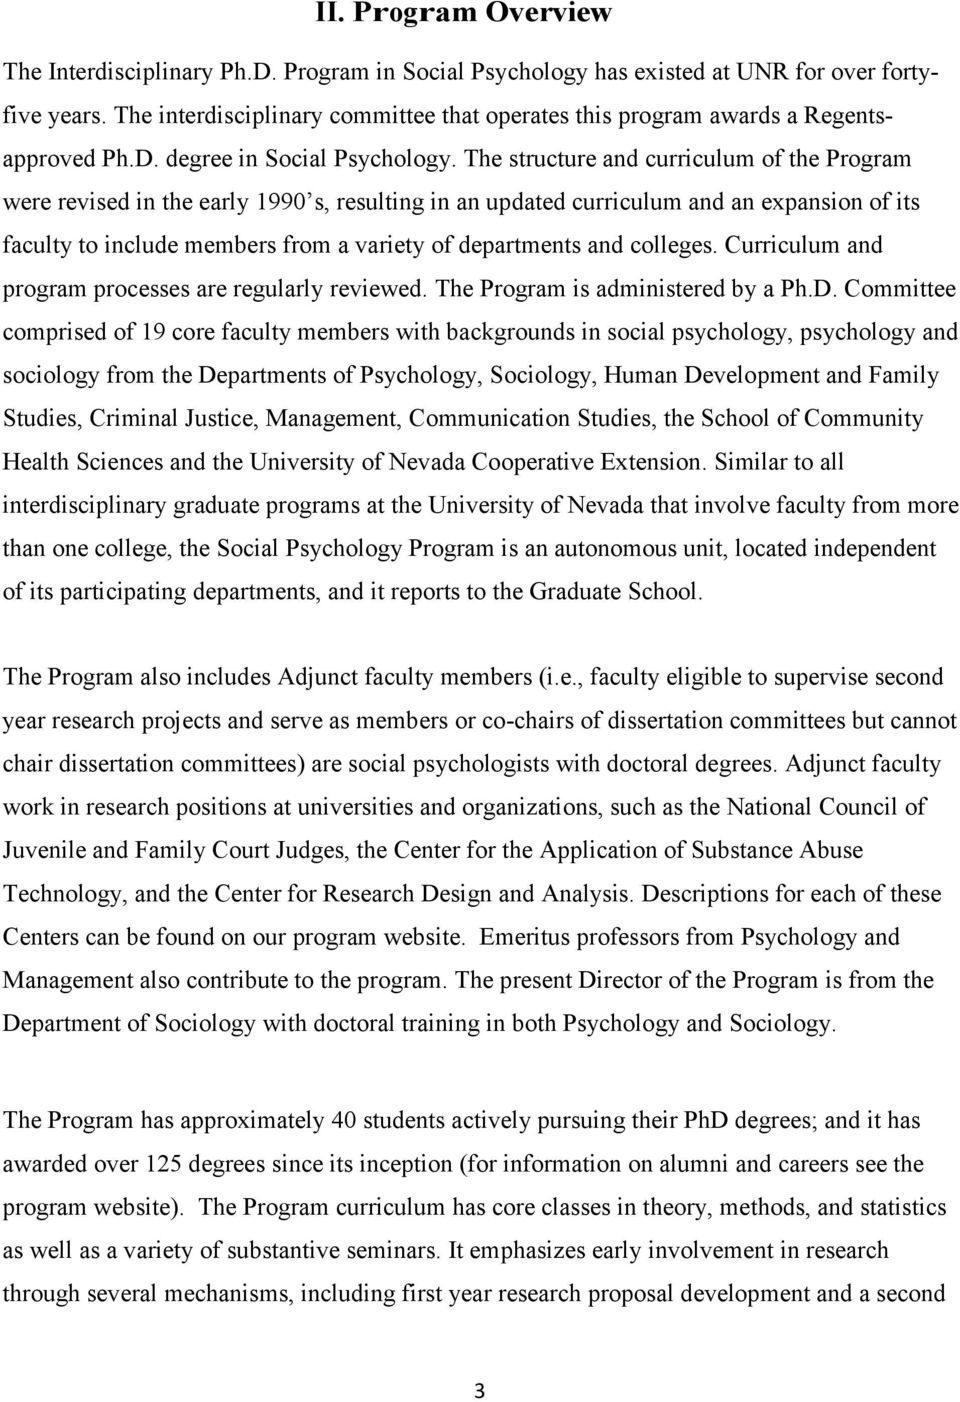 The structure and curriculum of the Program were revised in the early 1990 s, resulting in an updated curriculum and an expansion of its faculty to include members from a variety of departments and